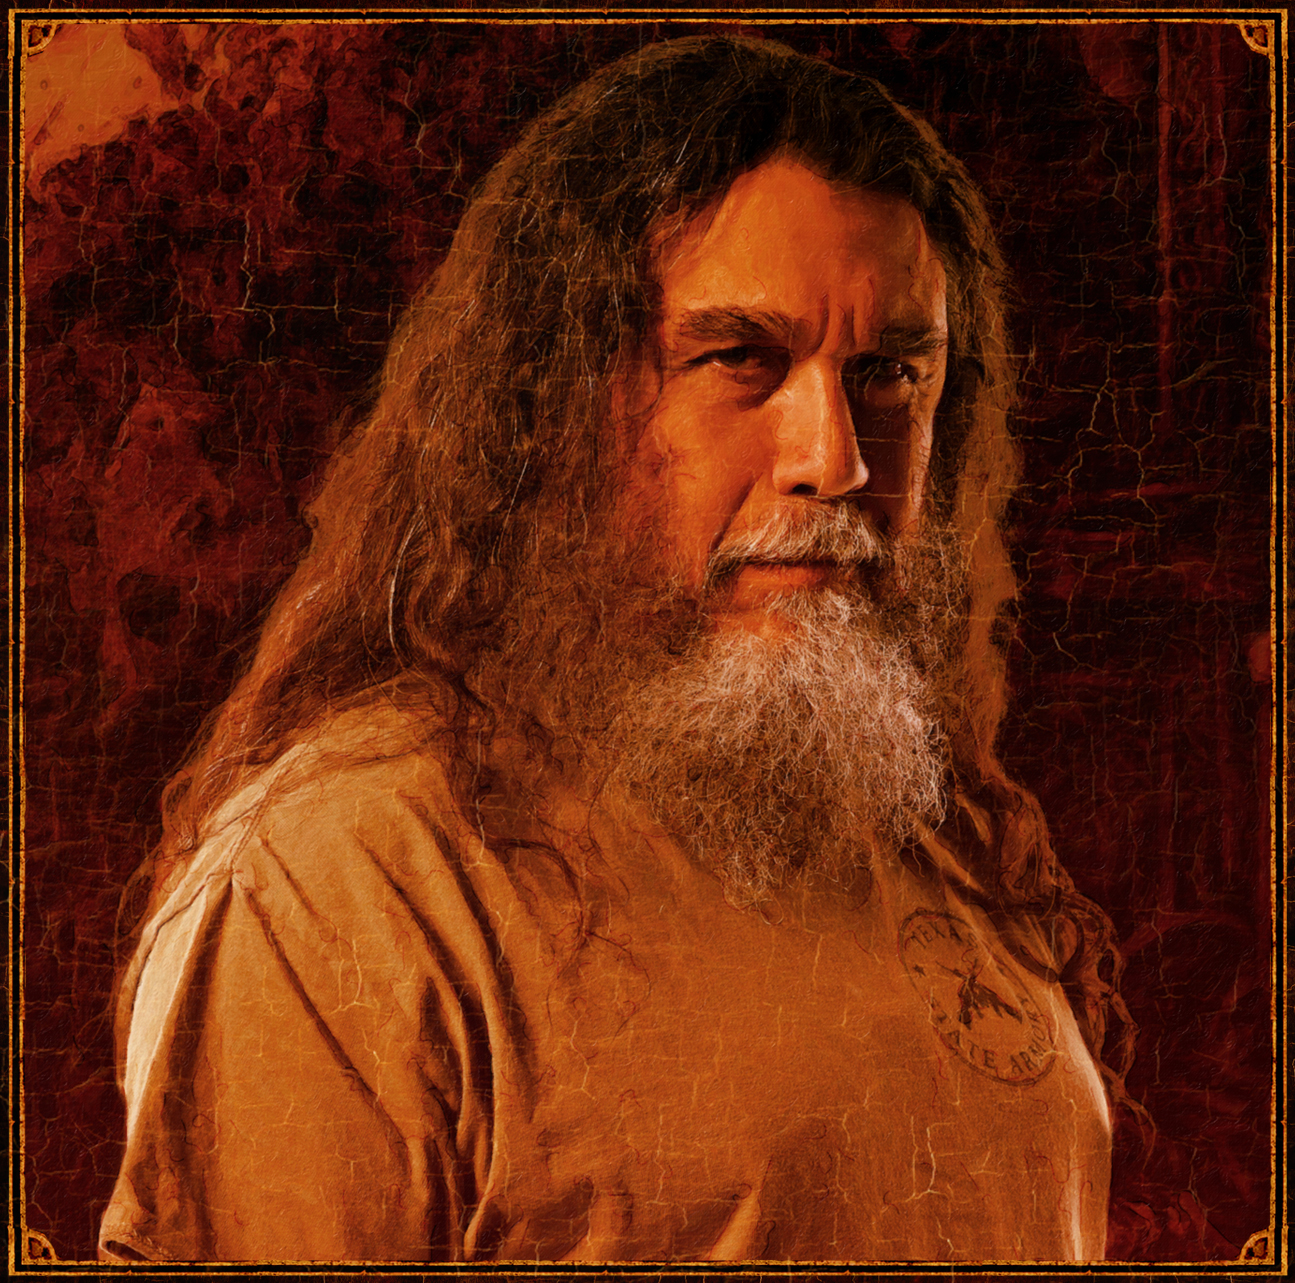 Tom Araya - Vocals and Bass